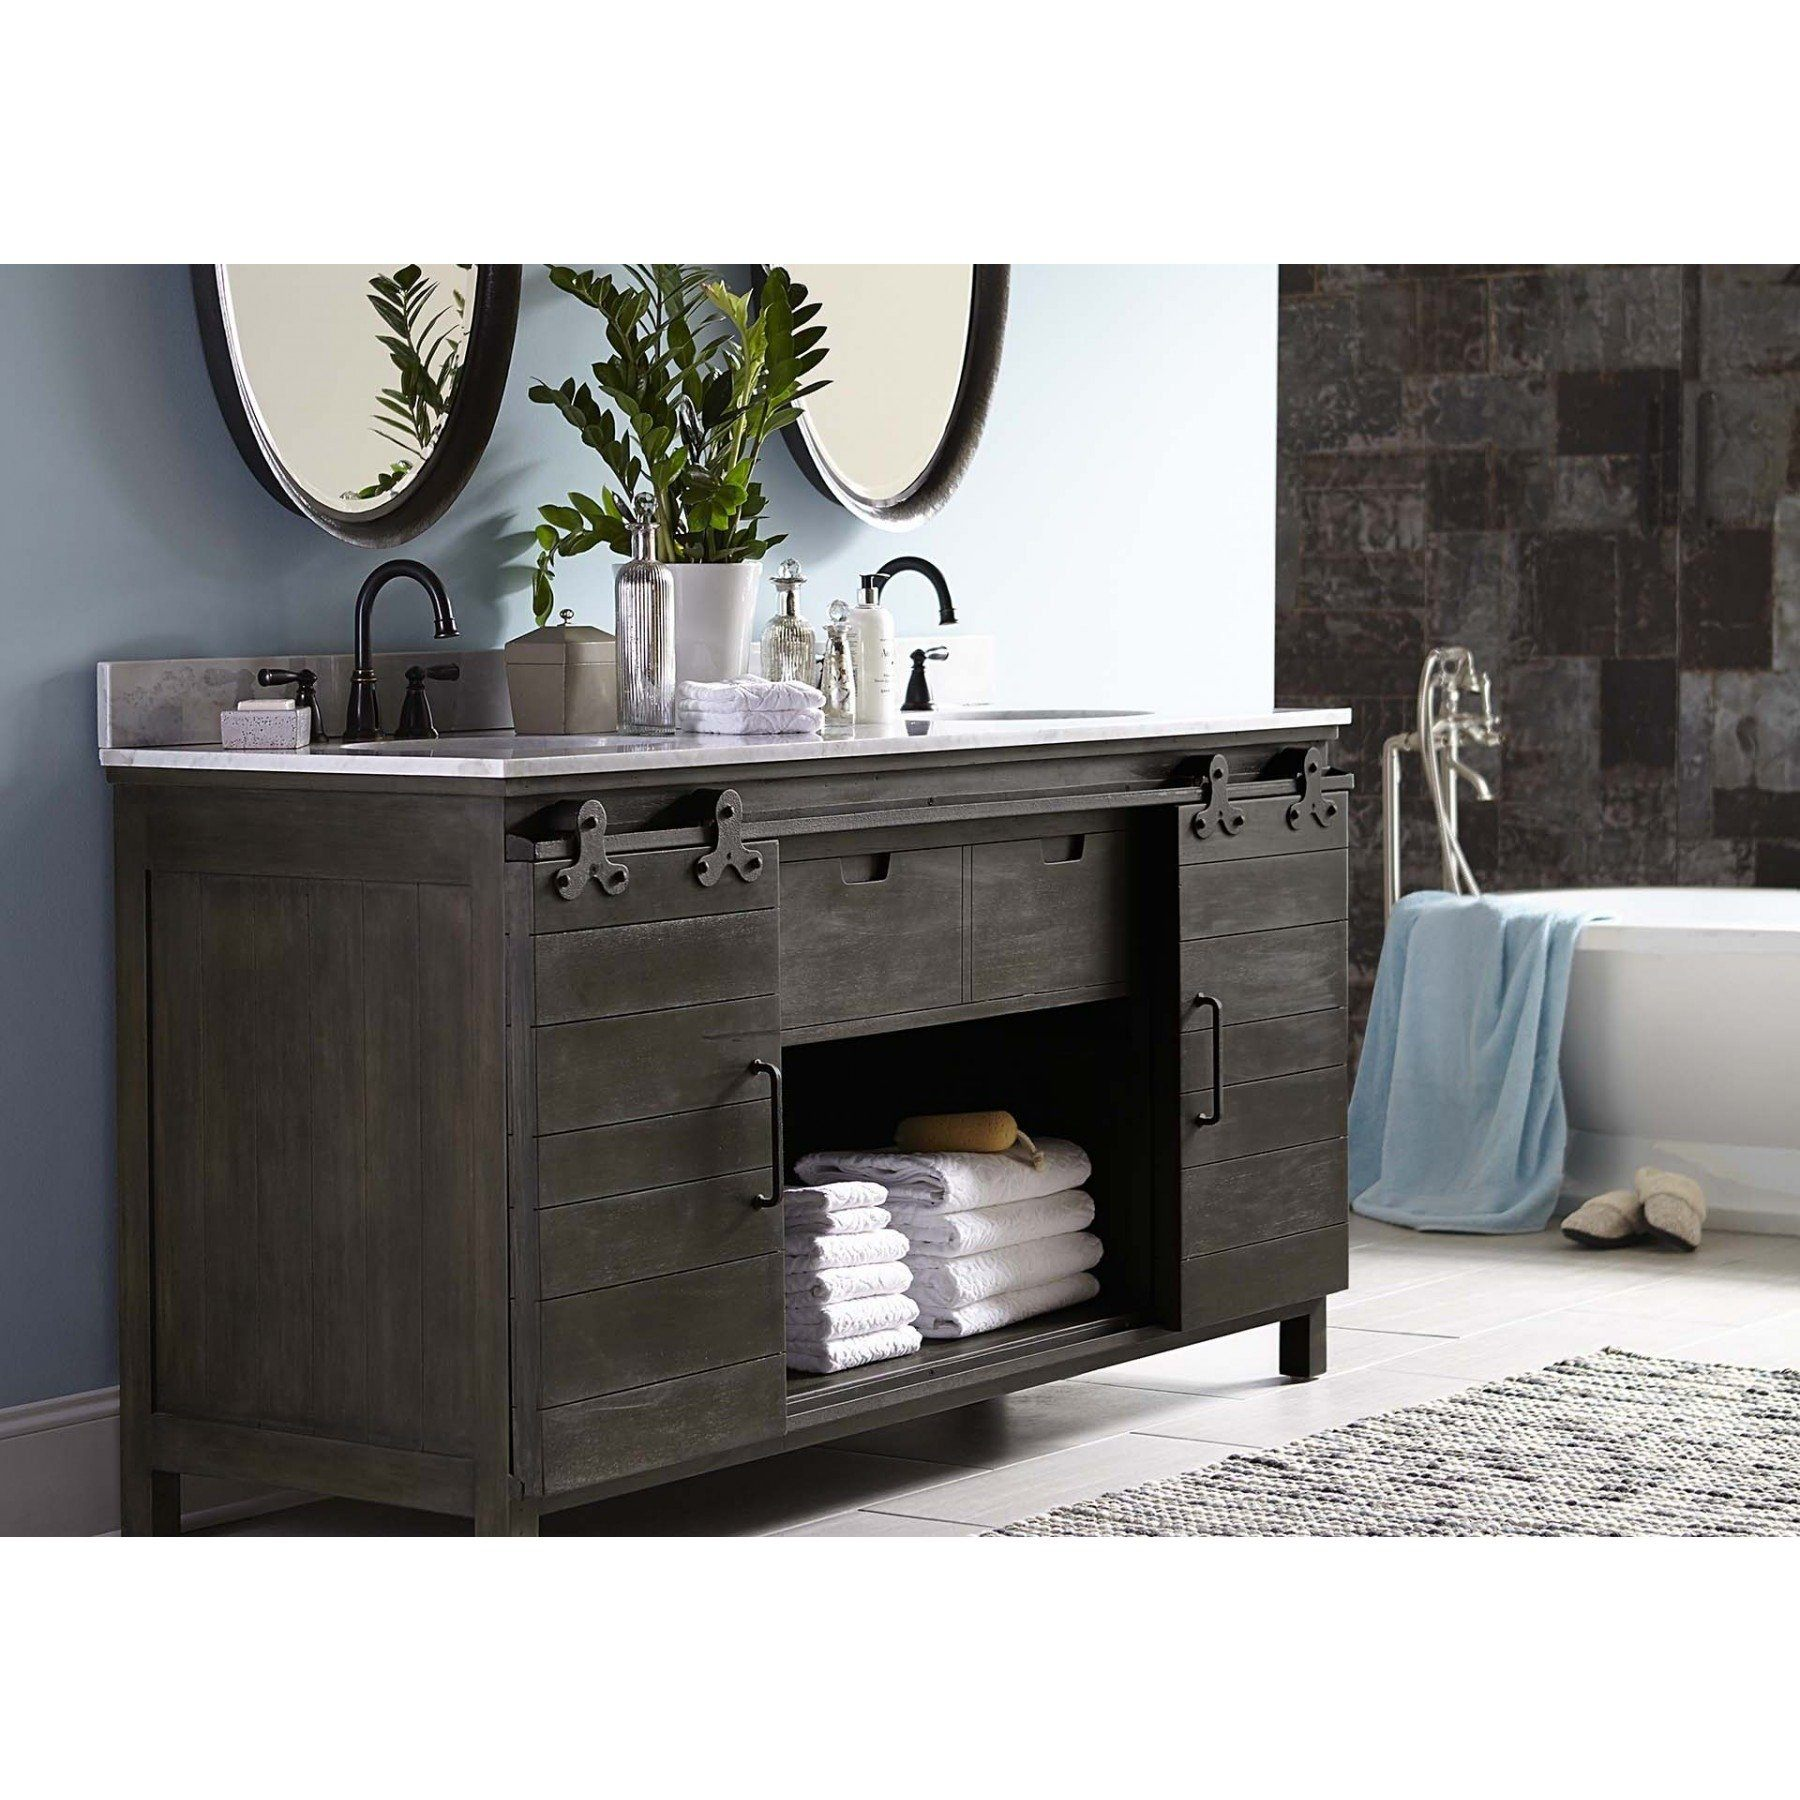 Lovecup Farmdoor Double Bathroom Vanity 40.9H x  72W x  24D in - LOVECUP